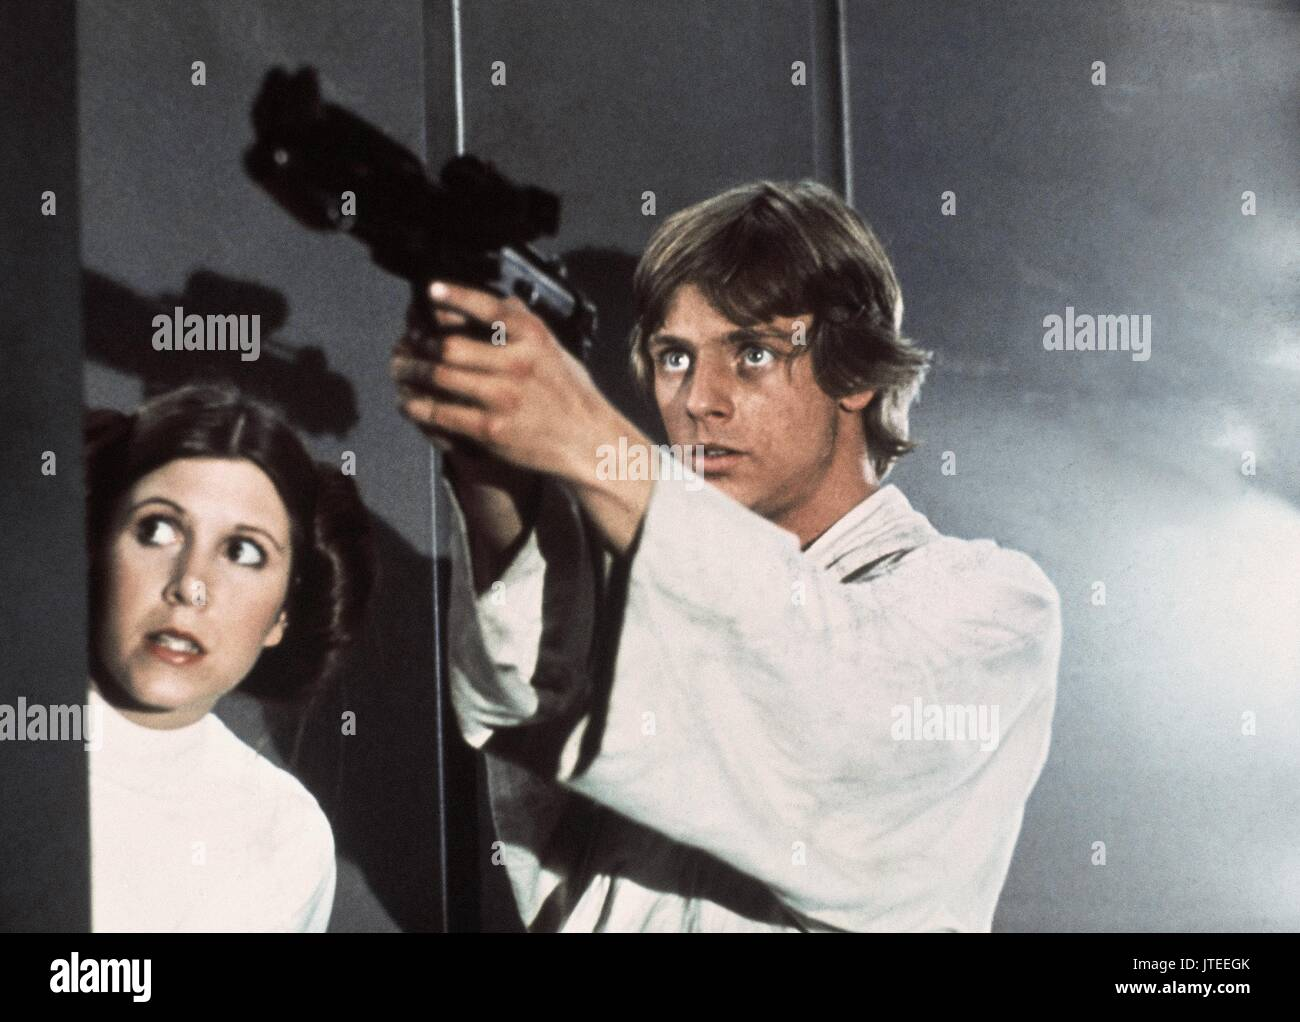 Carrie Fisher Mark Hamill Star Wars Episode Iv A New Hope 1977 Stock Photo Alamy